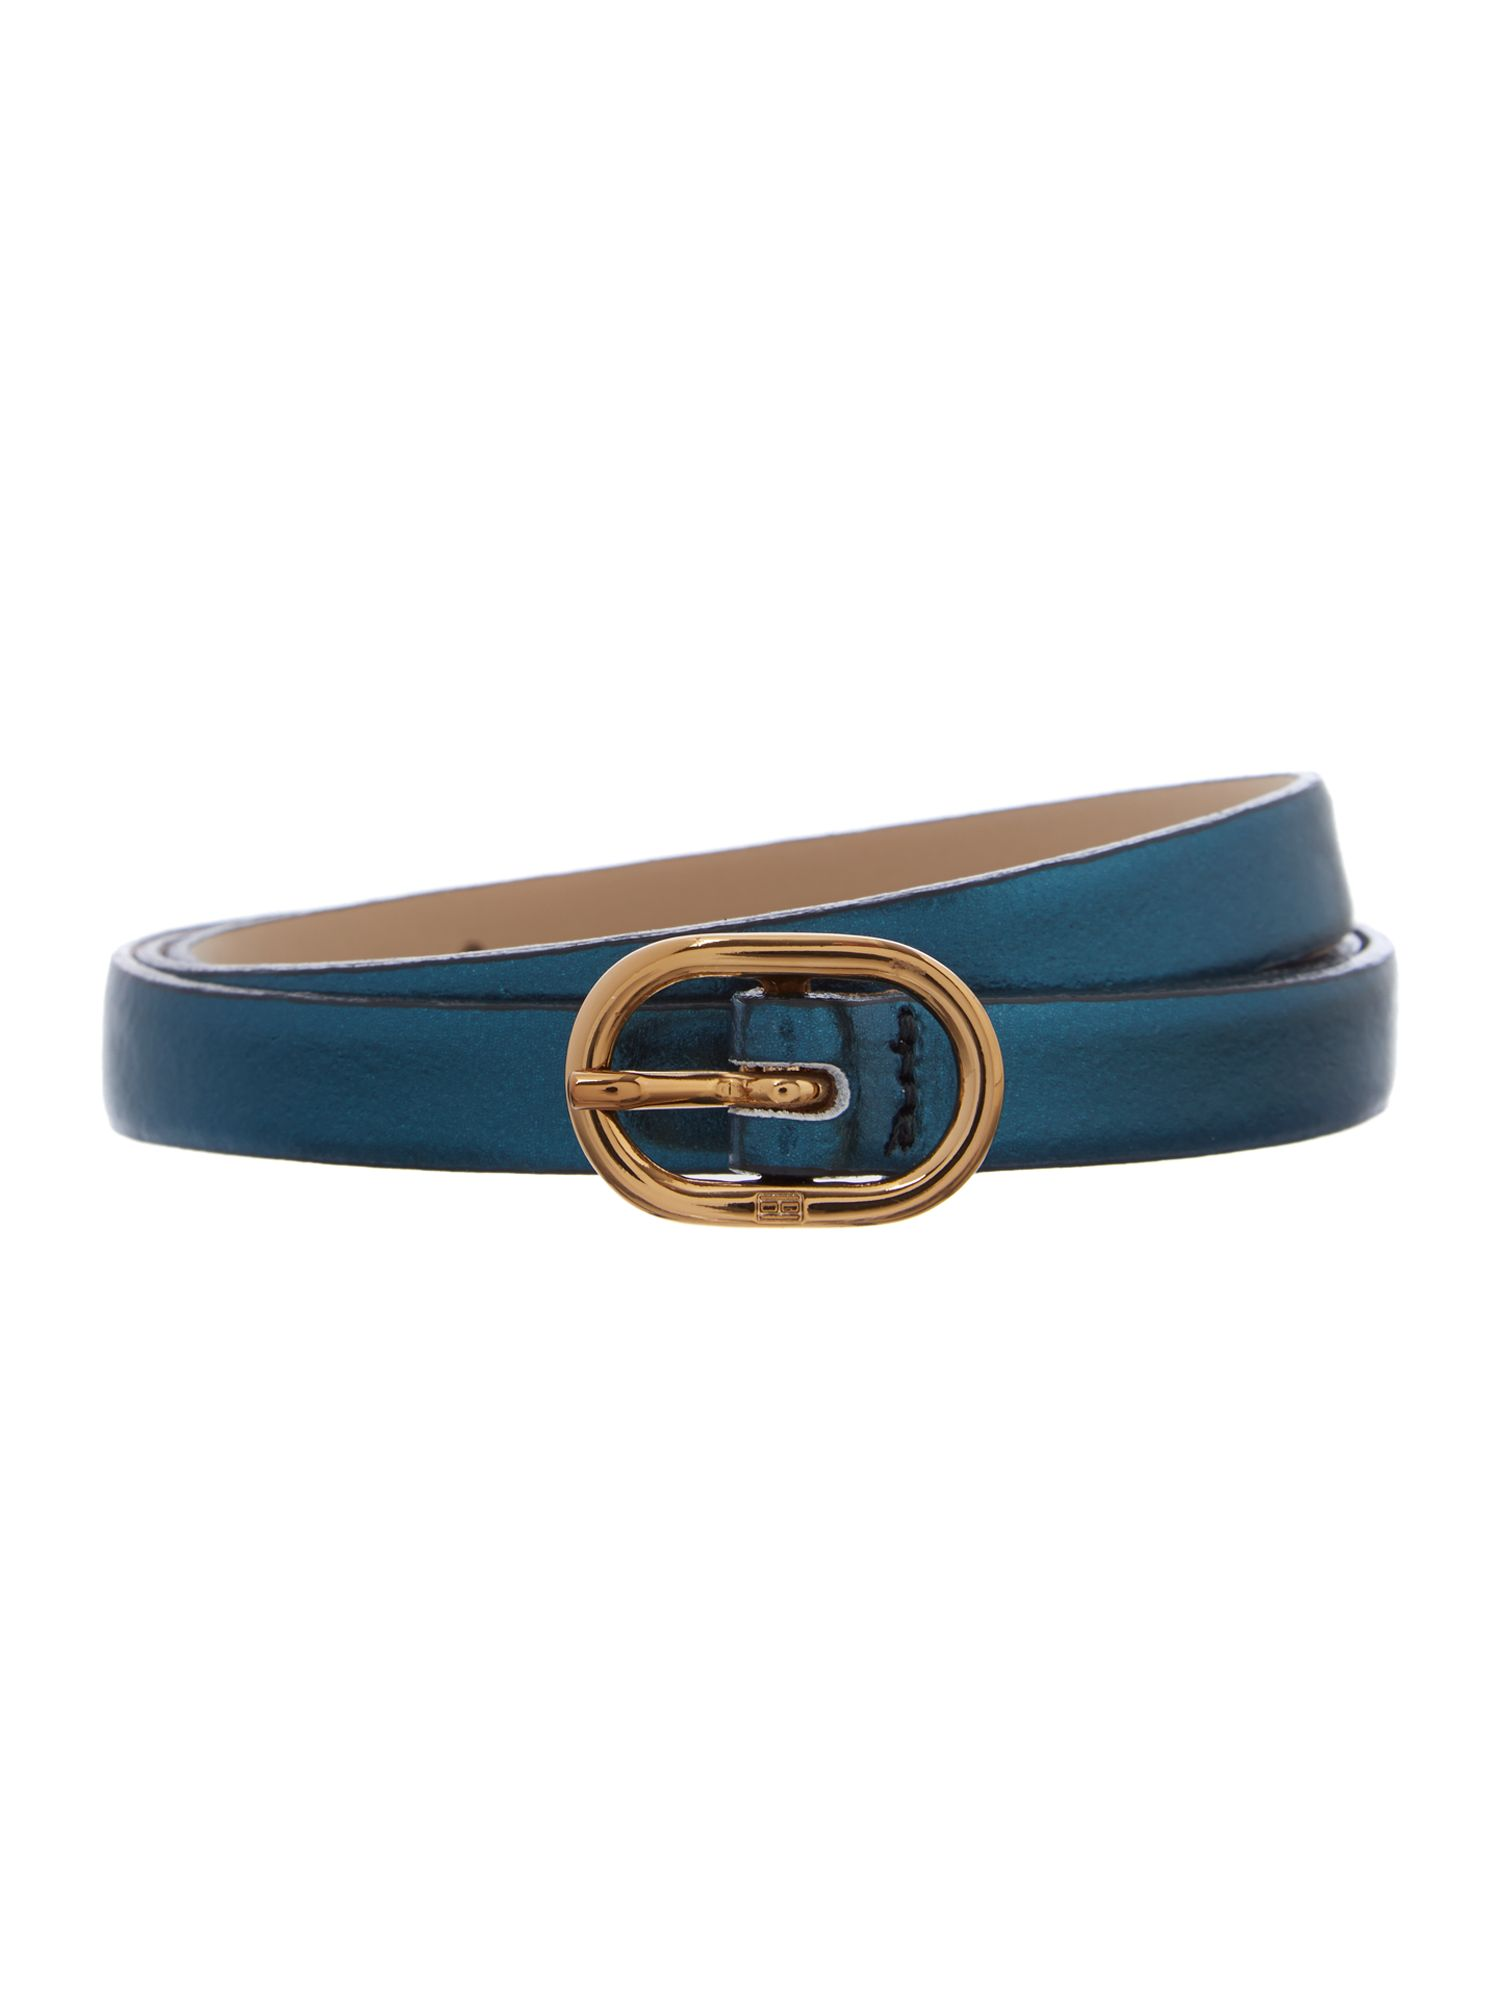 Tinsley green skinny waist belt